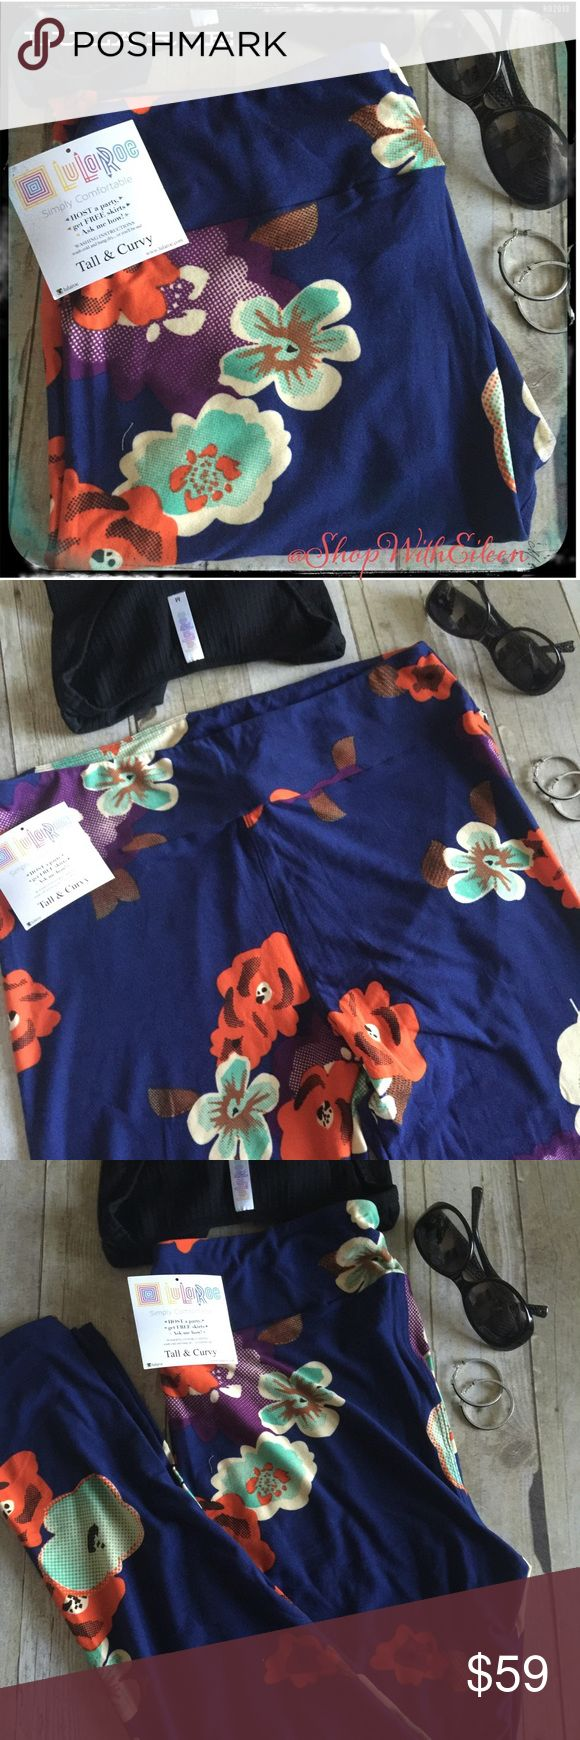 LulaRoe Royal Blue Floral Bunch TC Leggings!  LulaRoe Royal Blue With Flower Bunches TC Leggings! OMG! Flowers are so much fun! These are a royal blue background with bunches of flowers that are purple, orange & teal! Fun!  These are made in Indonesia. * I am not a consultant… I am just a LulaRoe addict and love the hunt to find great prints! Enjoy!  LuLaRoe Pants Leggings